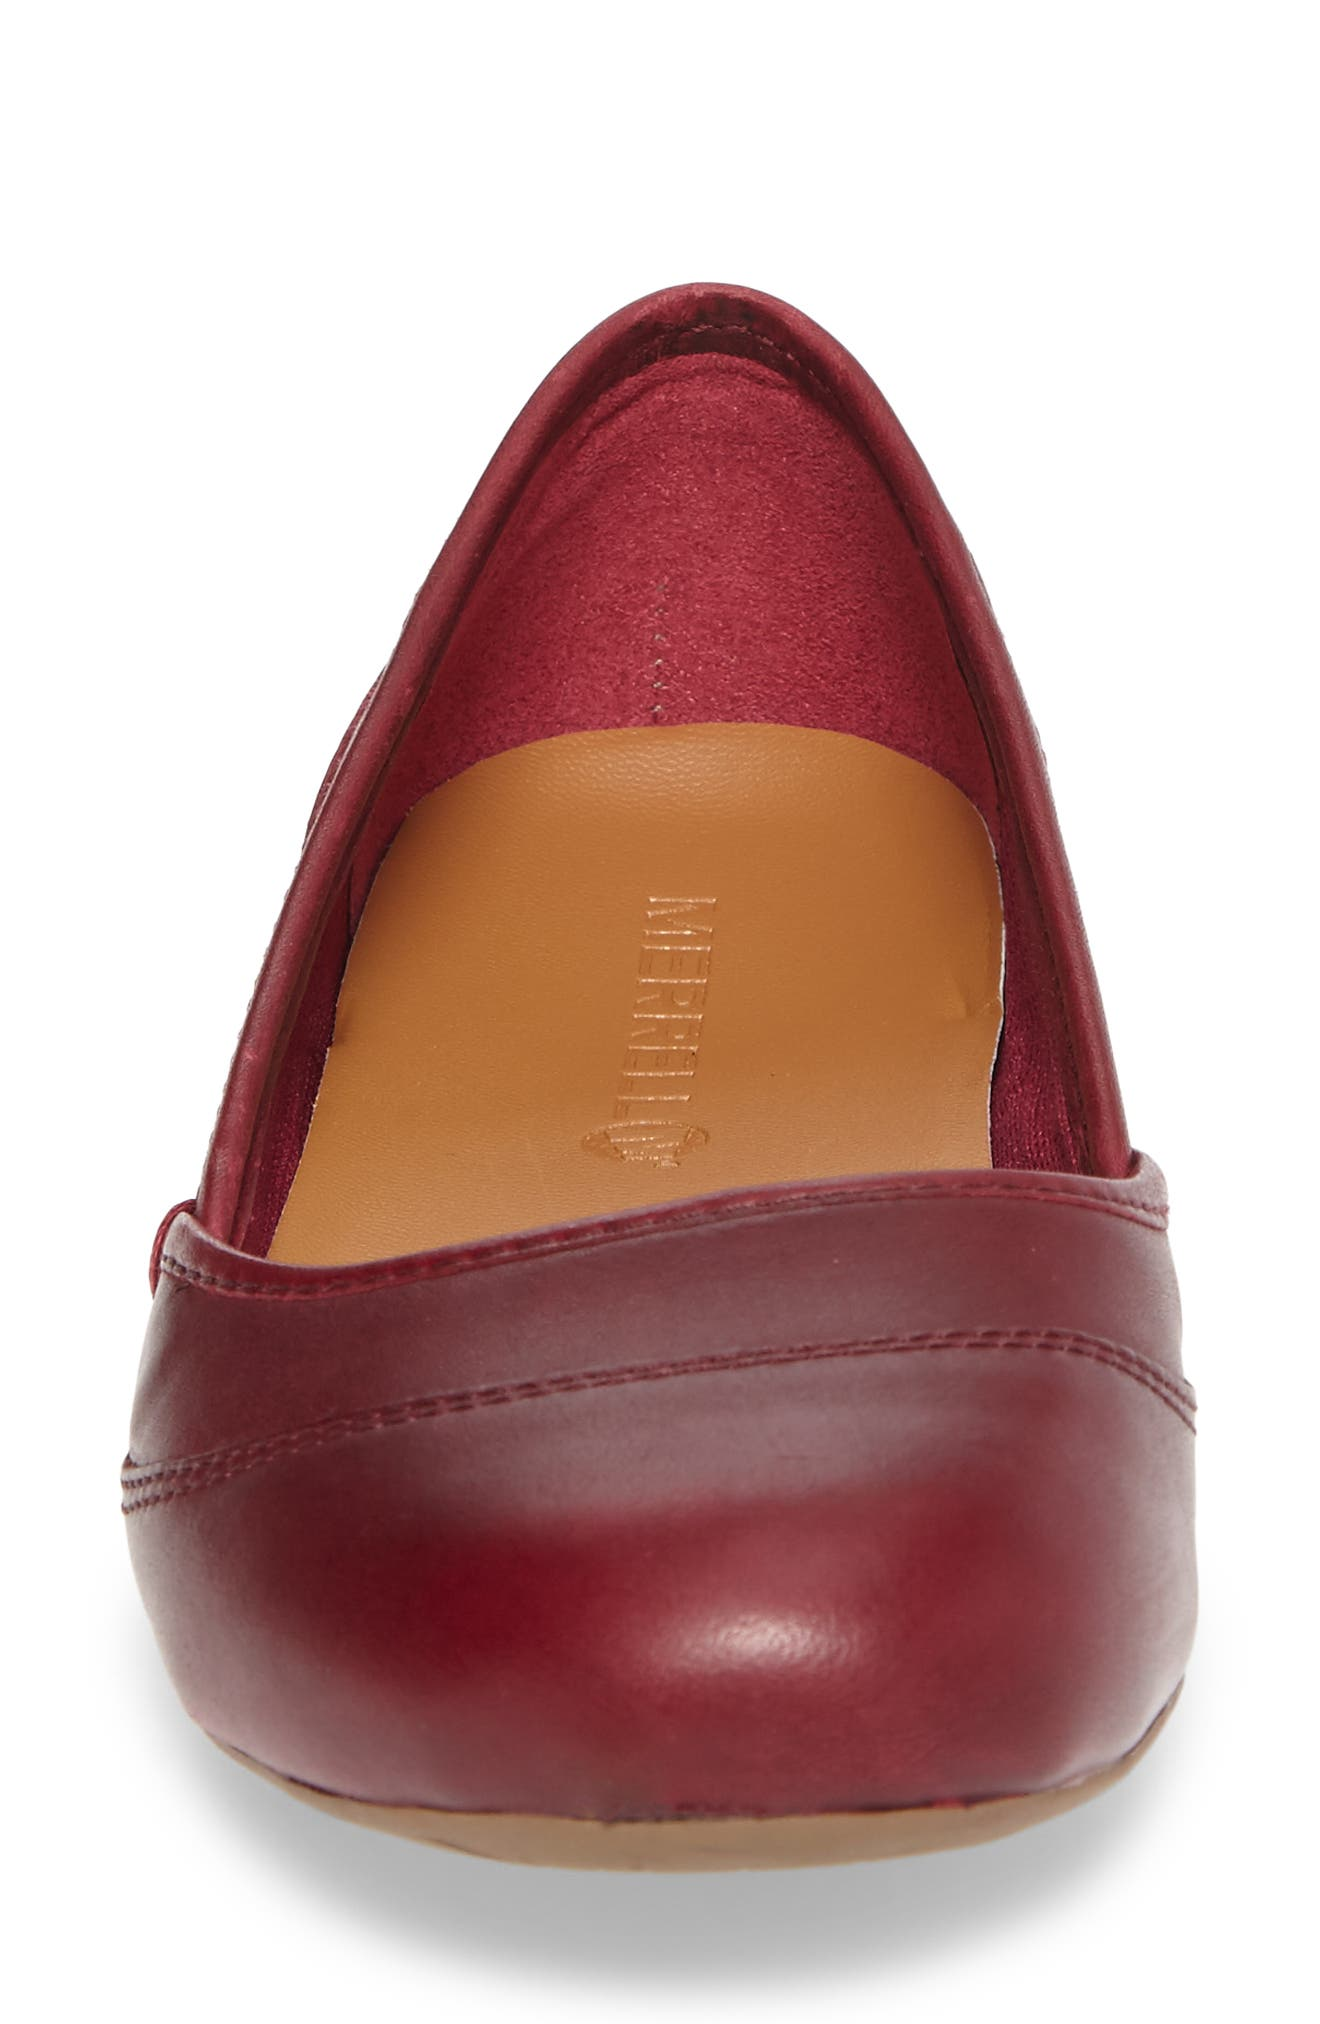 Ember Ballet Flat,                             Alternate thumbnail 4, color,                             Beet Red Leather